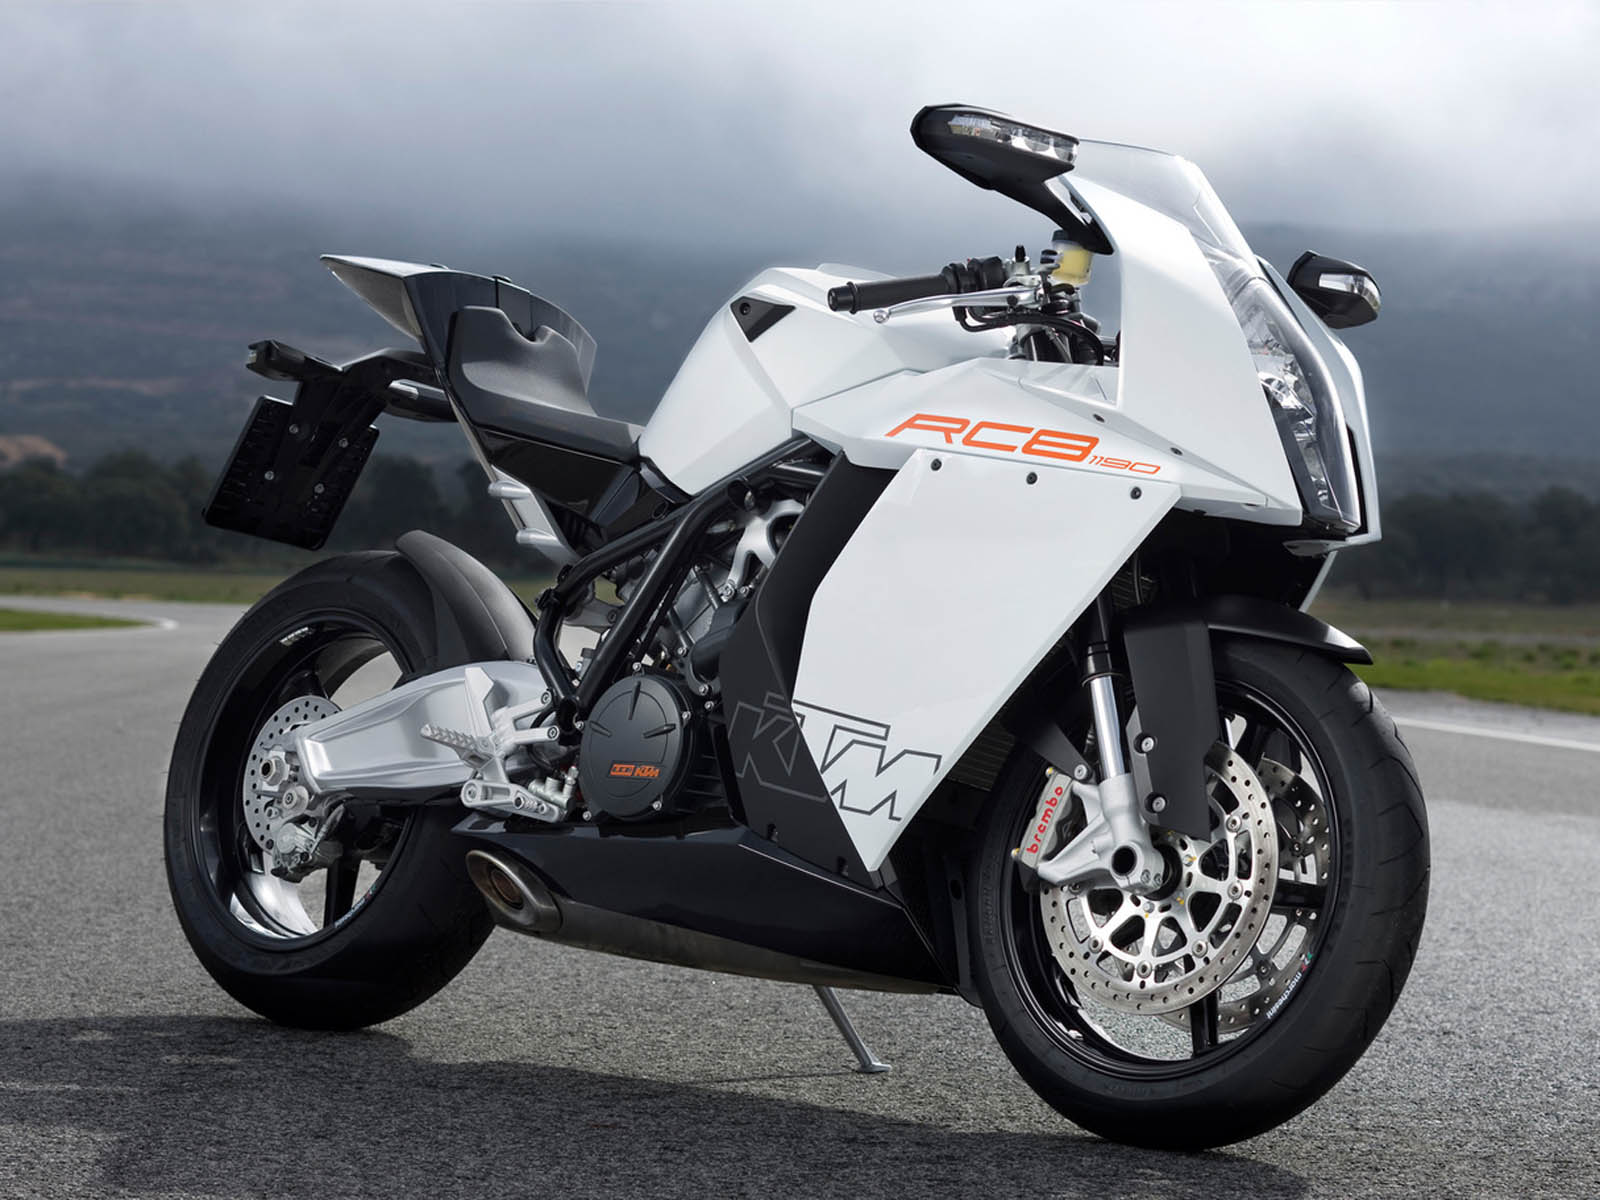 Tag KTM RC8 1190 Bike Wallpapers Backgrounds PhotosImages and 1600x1200